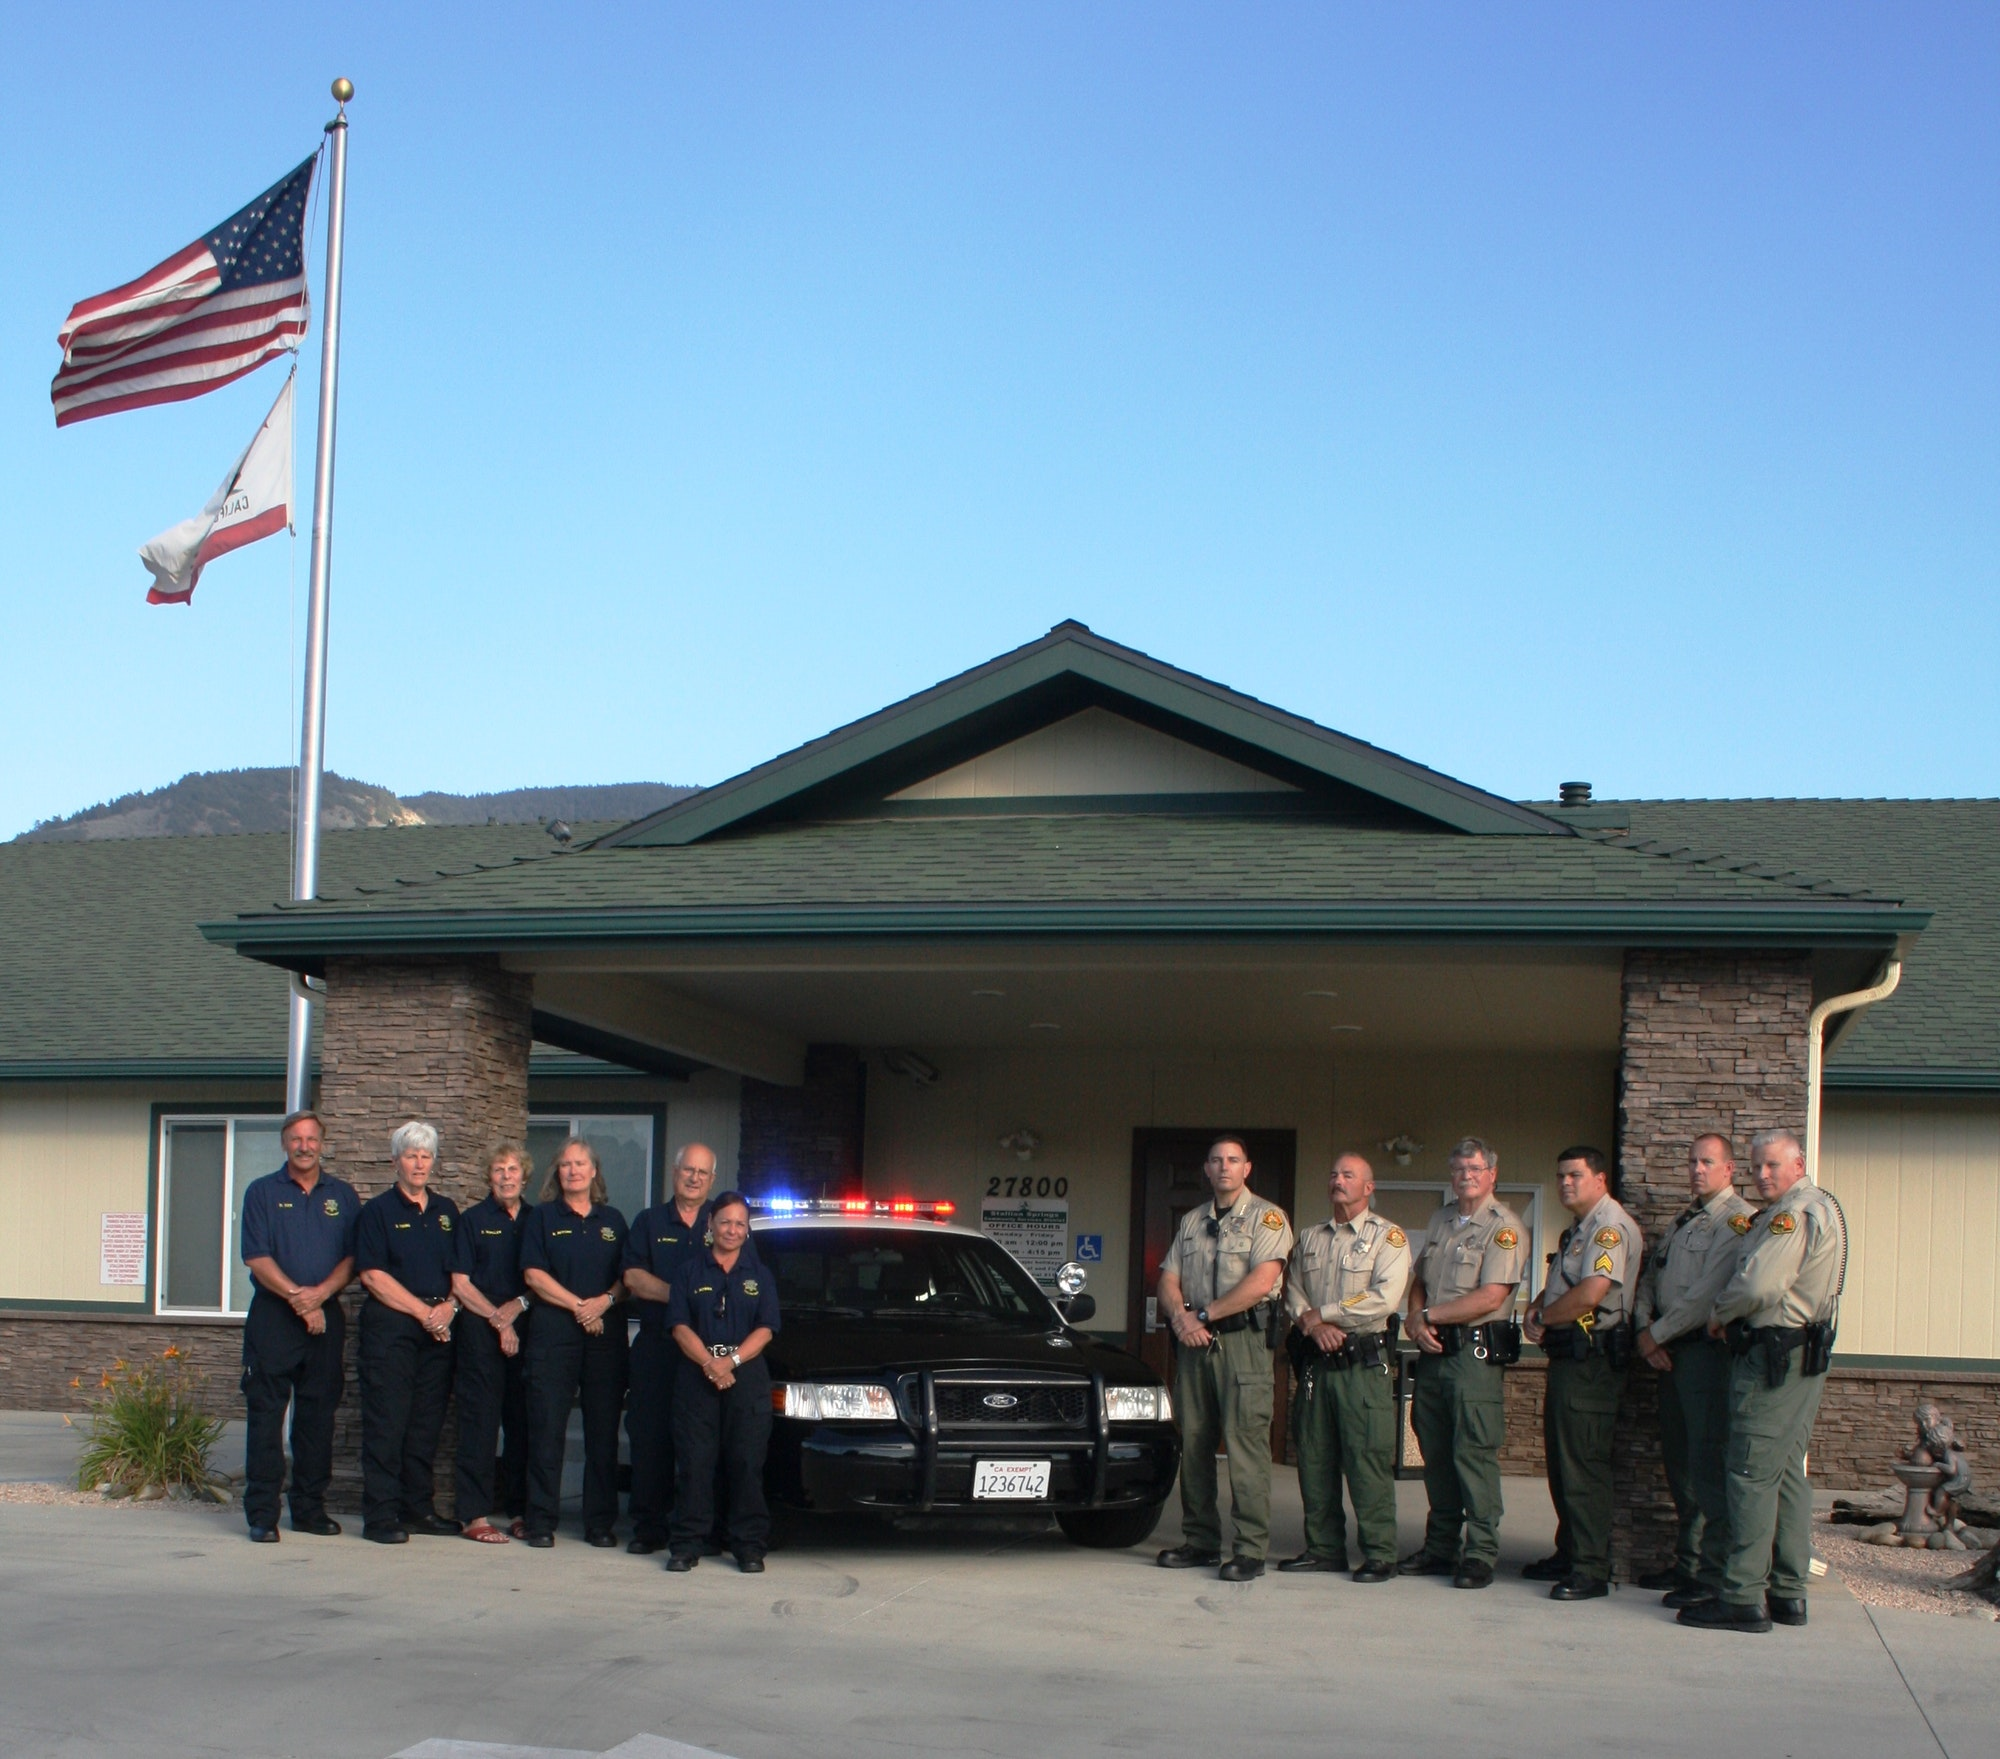 SSPD officers with SSPD Community Services Unit (CSU)